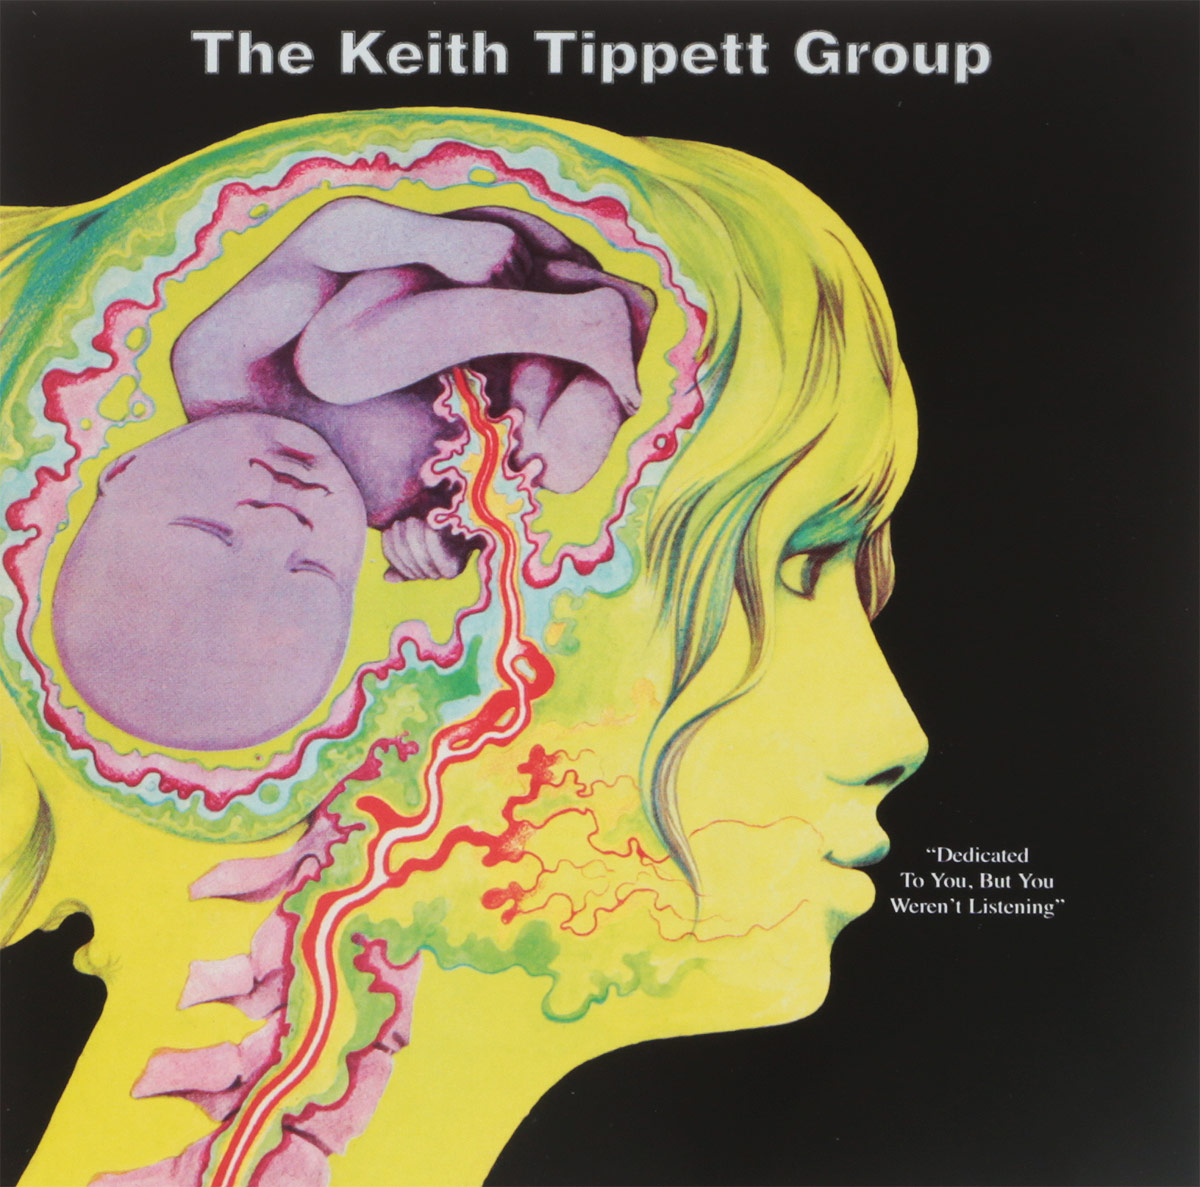 The Keith Tippett Group The Keith Tippett Group. Dedicated To You, But You Weren't Listening